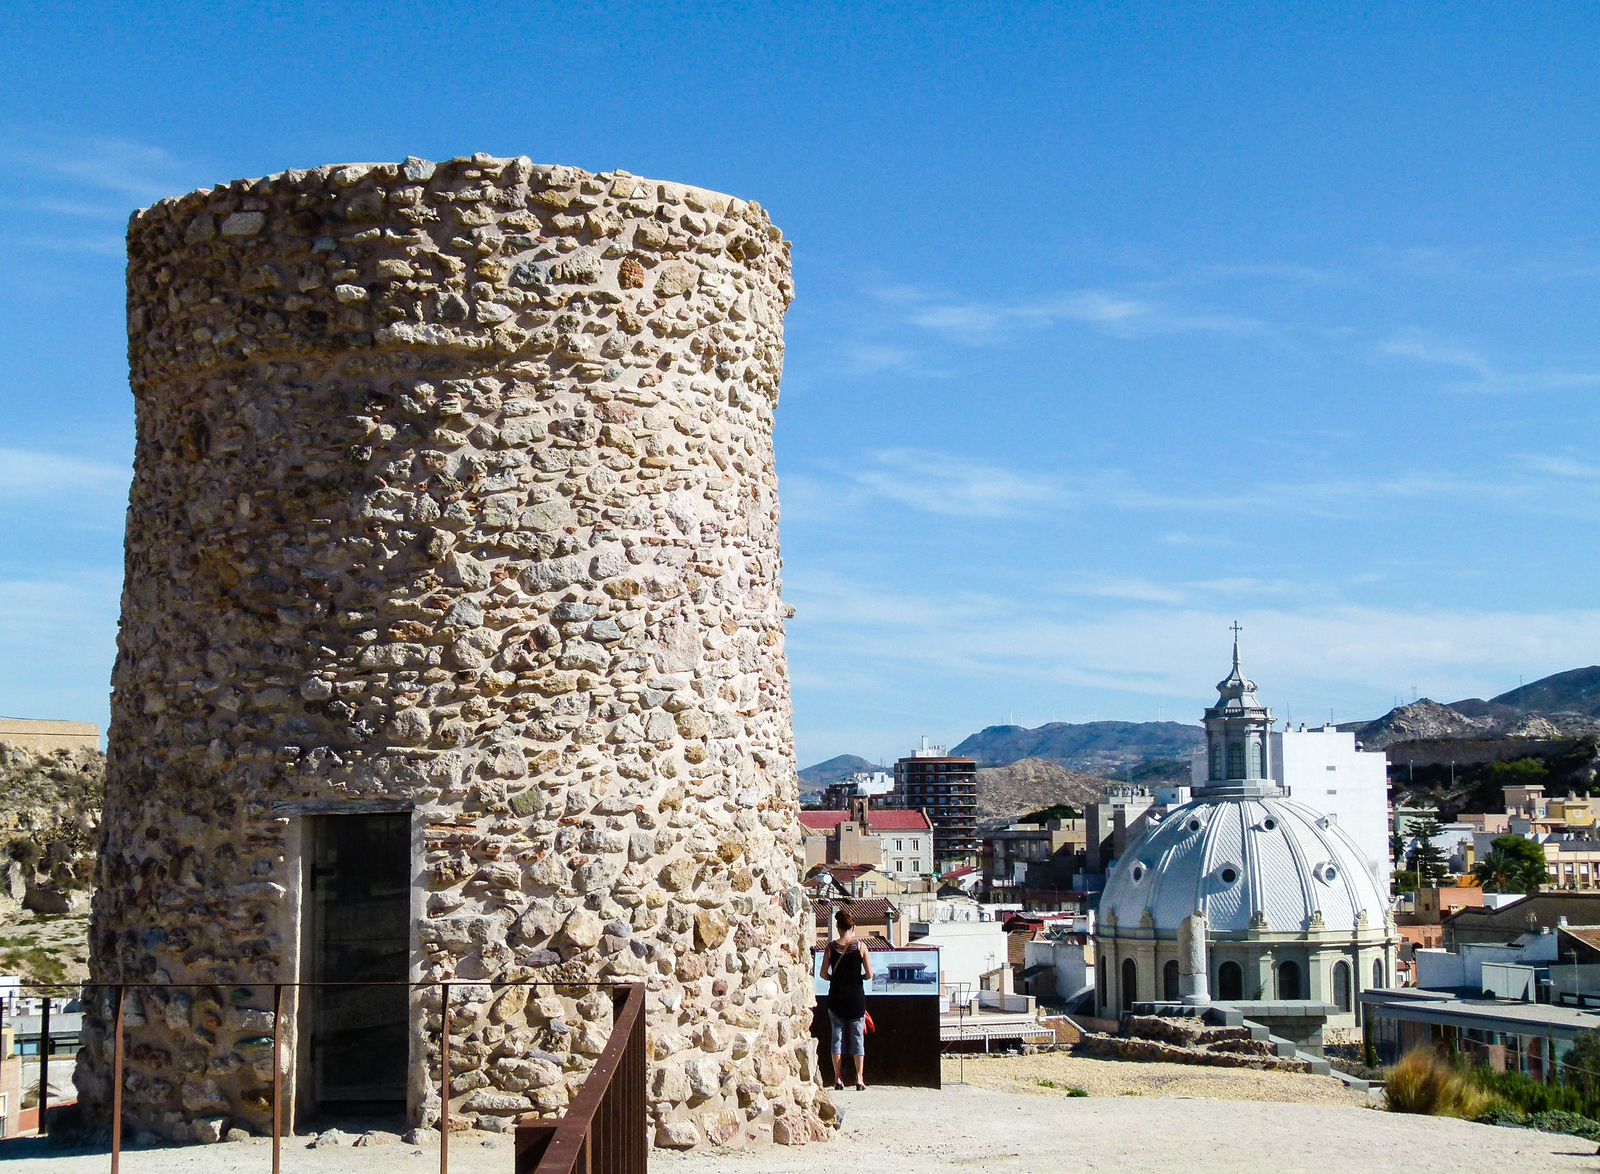 You don't need a guide to explore Cartagena, Spain. Enjoy this European port on your own.